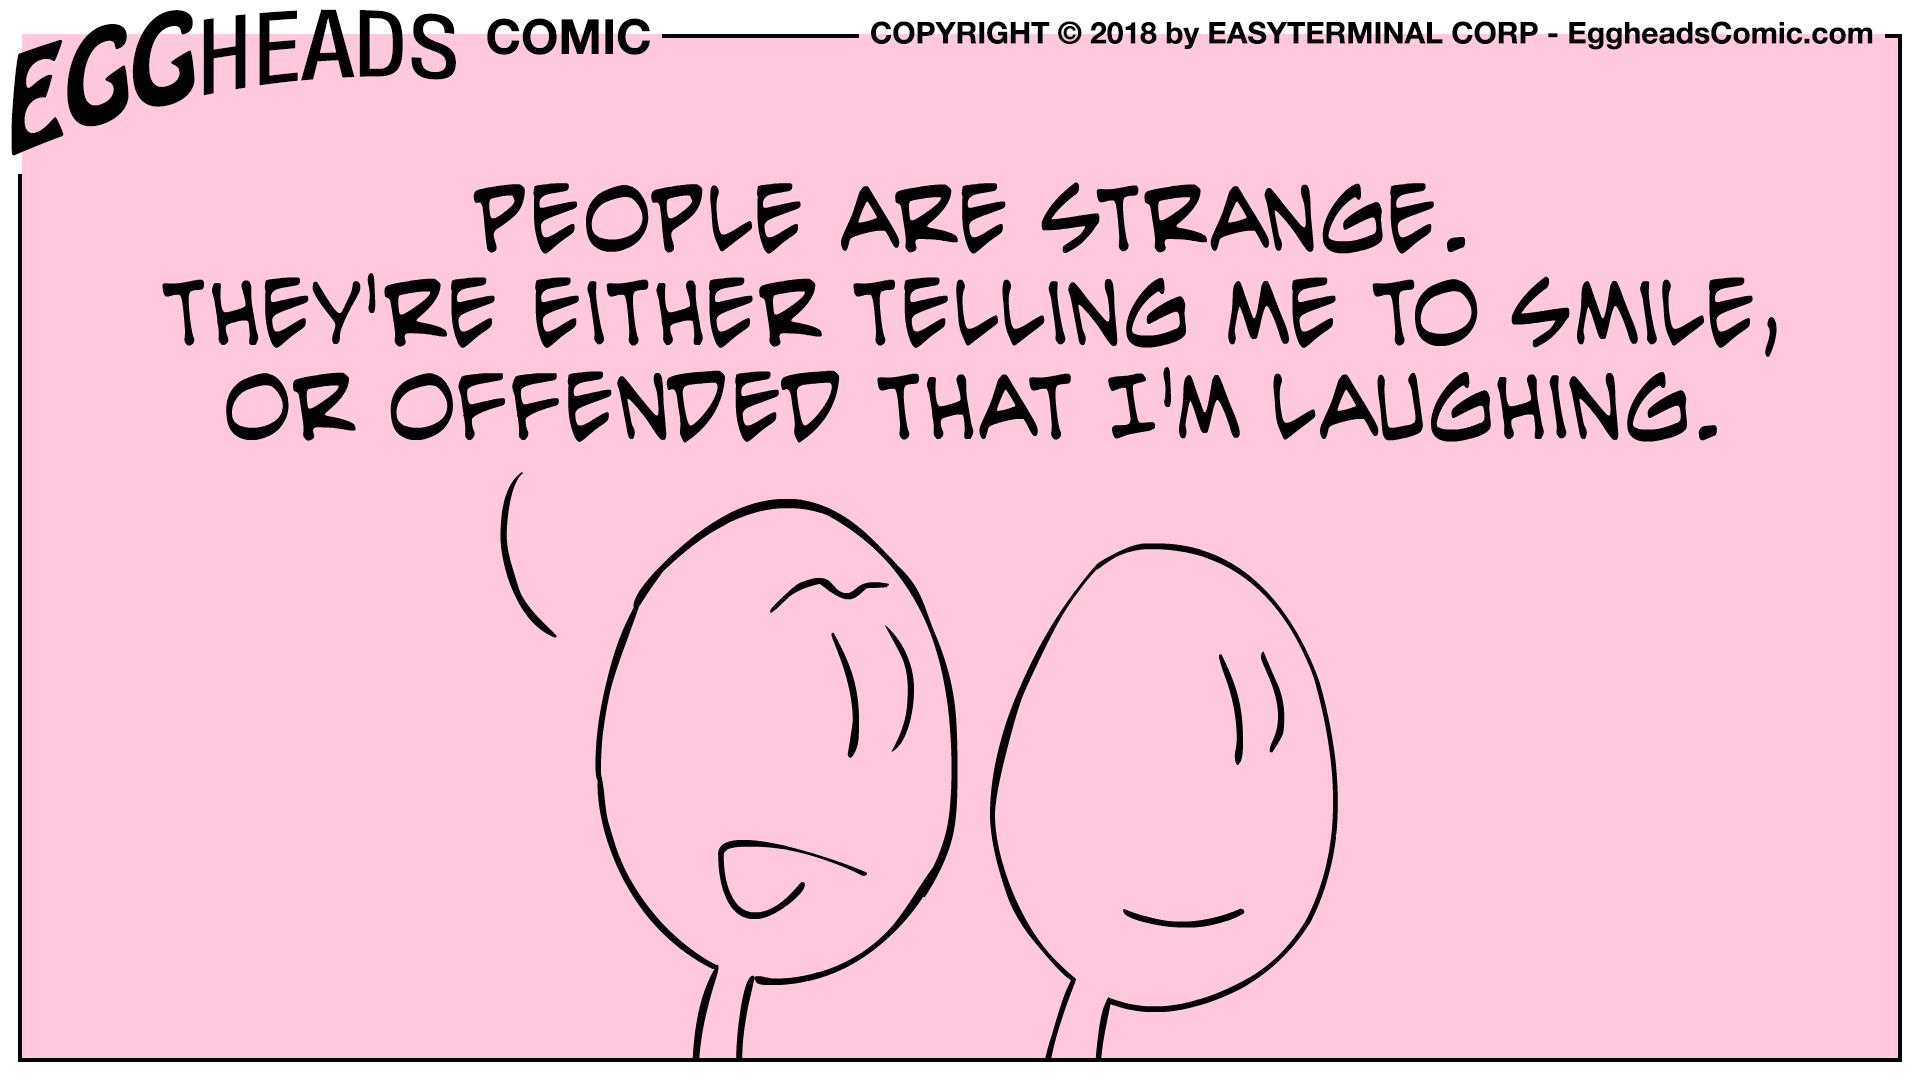 Webcomic Eggheads Comic Strip 064 People Are Strange